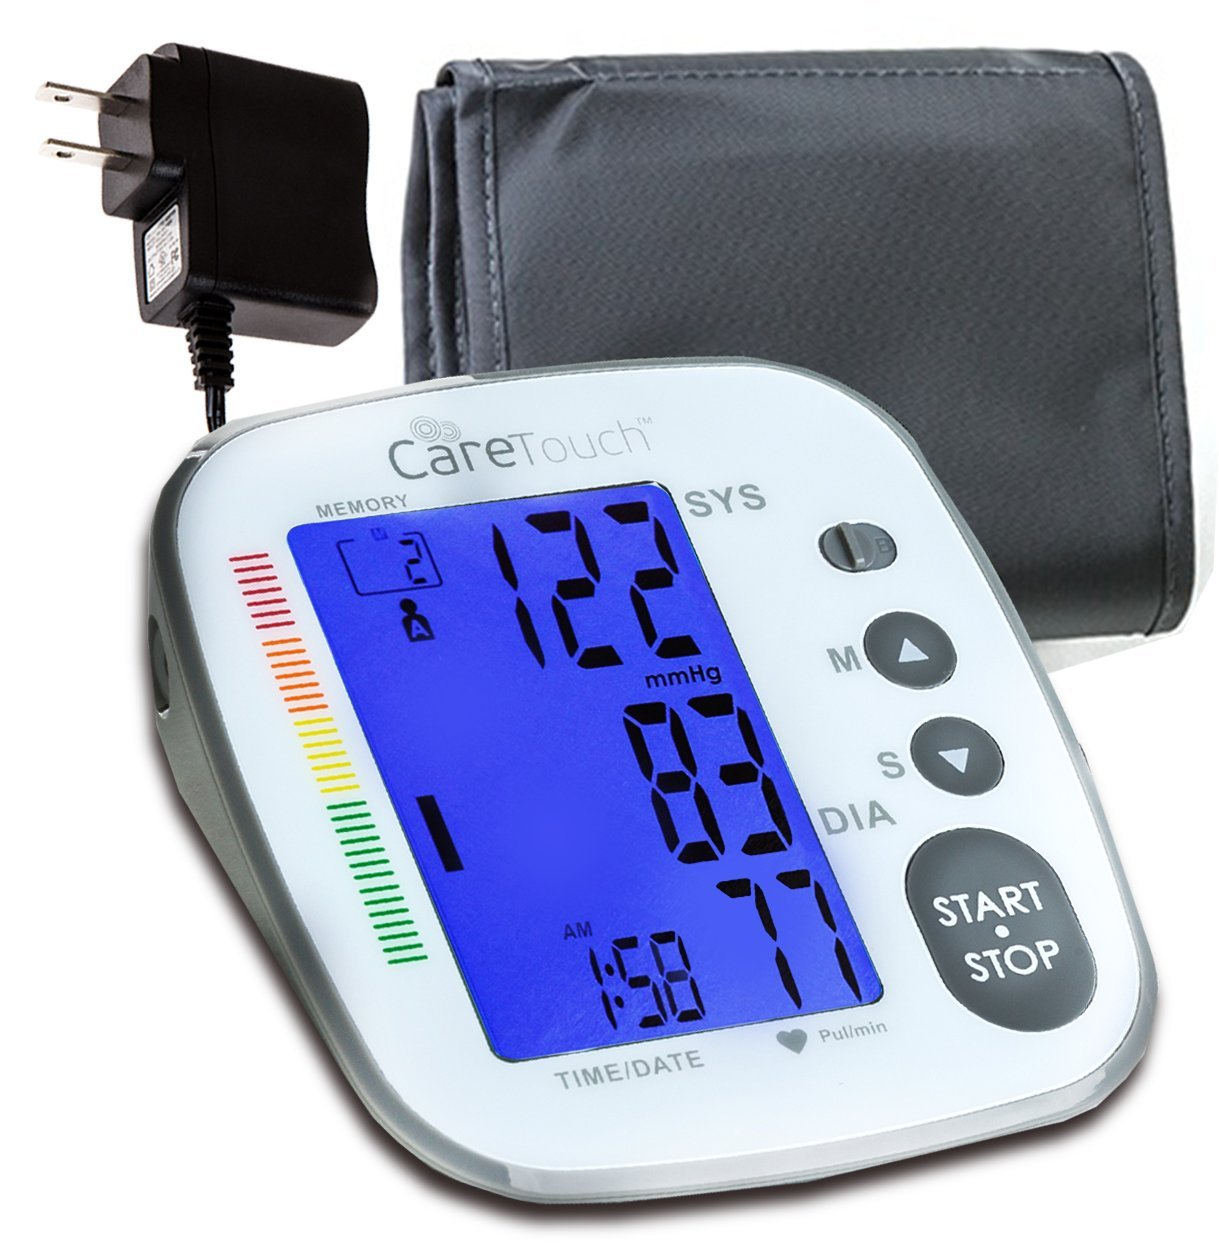 Care Touch Digital Blood Pressure Monitor Cuff – Platinum Series Upper Arm BP Machine with Large LCD Display, Medium to Large Cuff – Includes Batteries, AC Adapter and Carrying Case